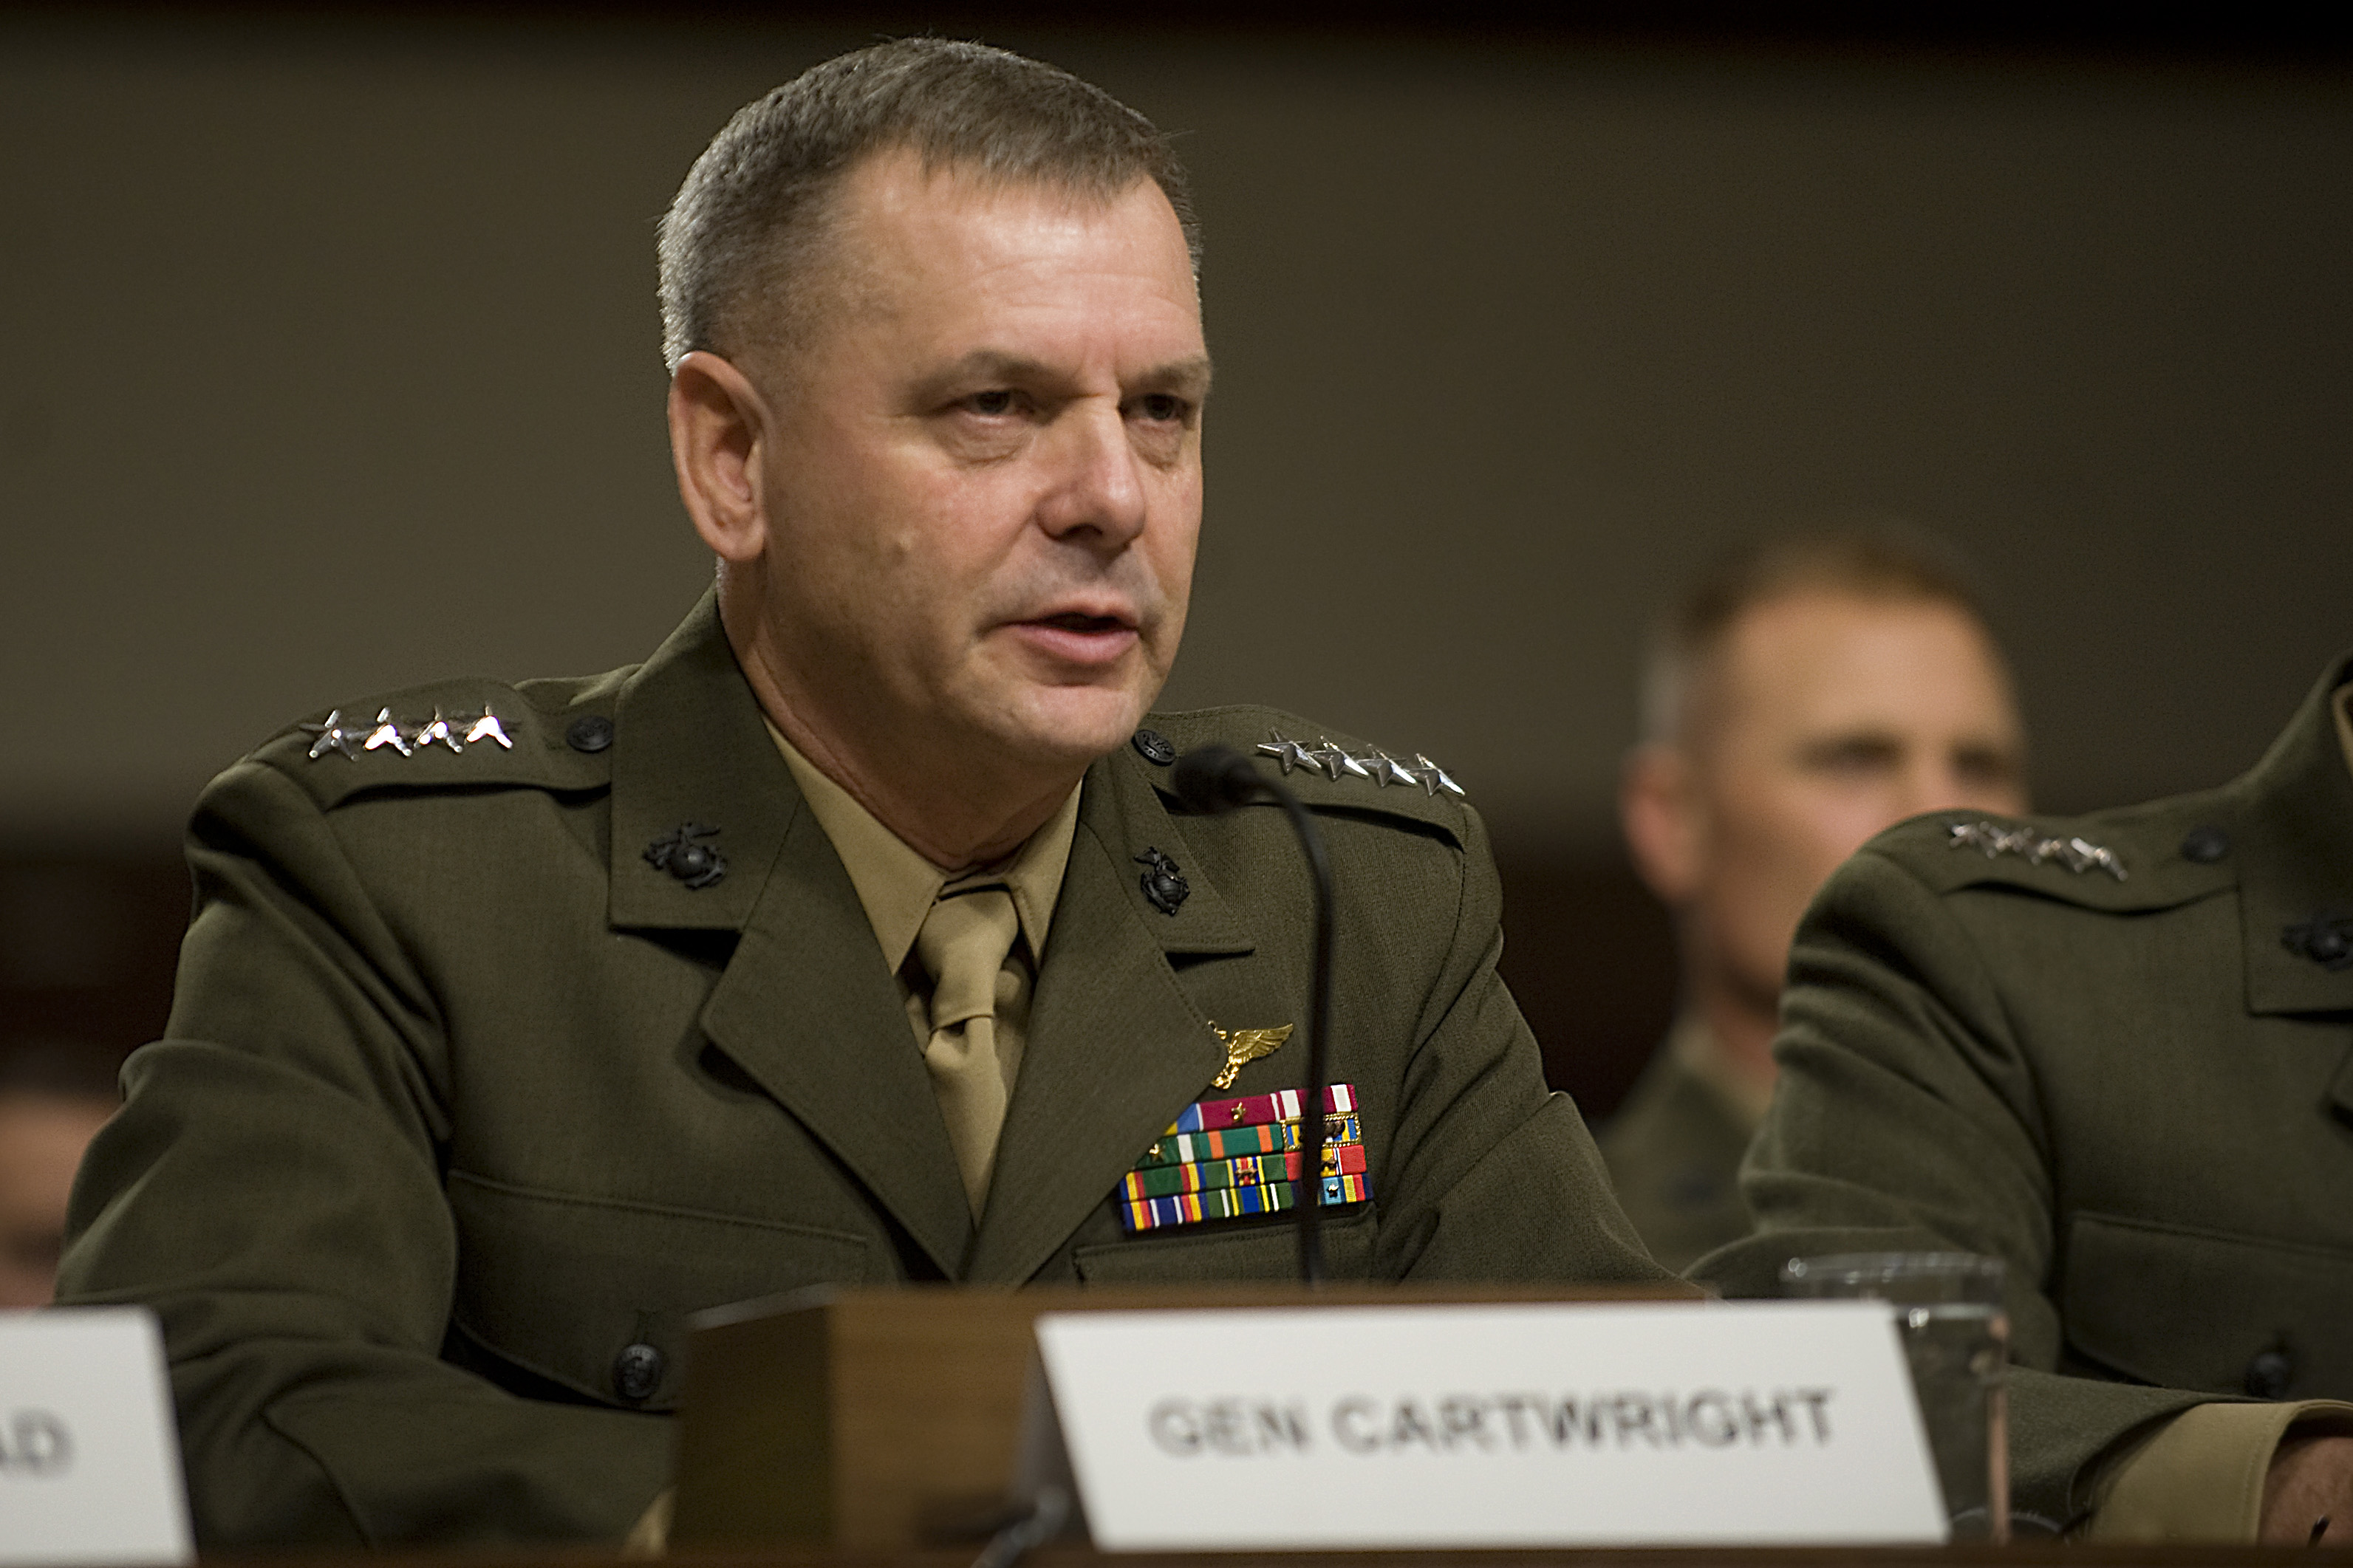 """Vice Chairman of the Joint Chiefs of Staff Gen. James Cartwright testifies on Capitol Hill before the Senate Armed Services Committee's hearing on the military's """"don't ask, don't tell"""" policy on Dec. 3, 2010."""